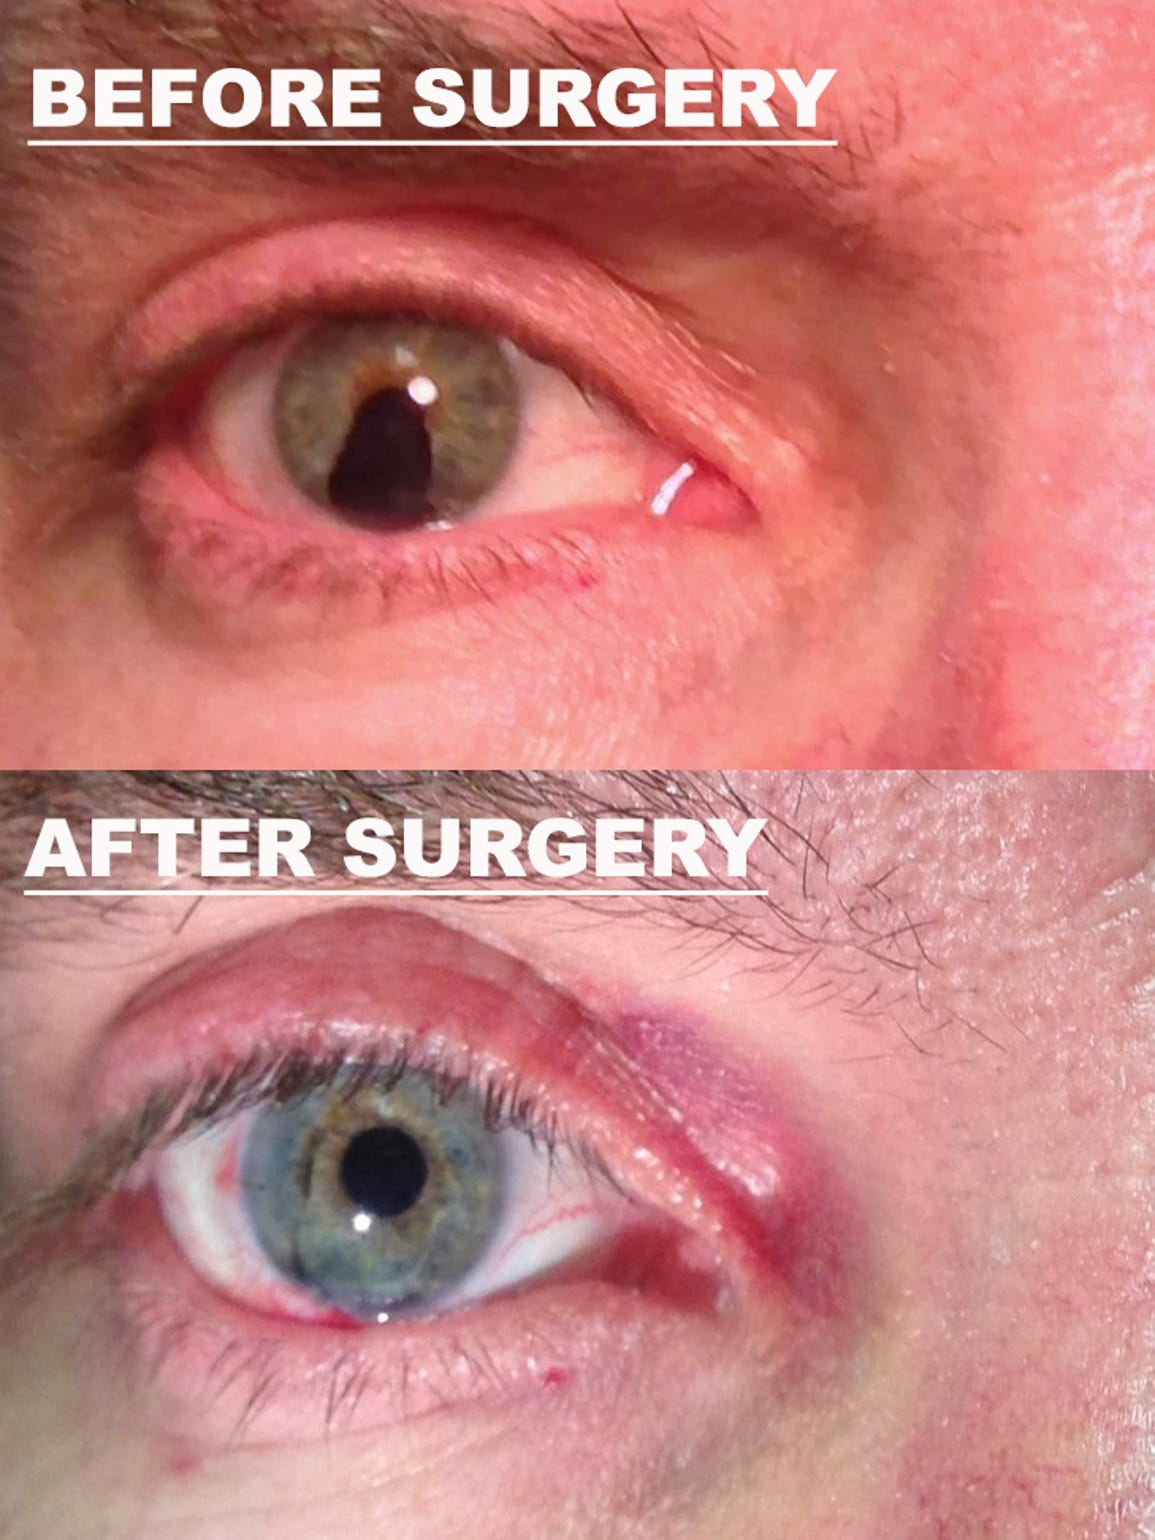 Dane Norem's right eye is shown before and after his